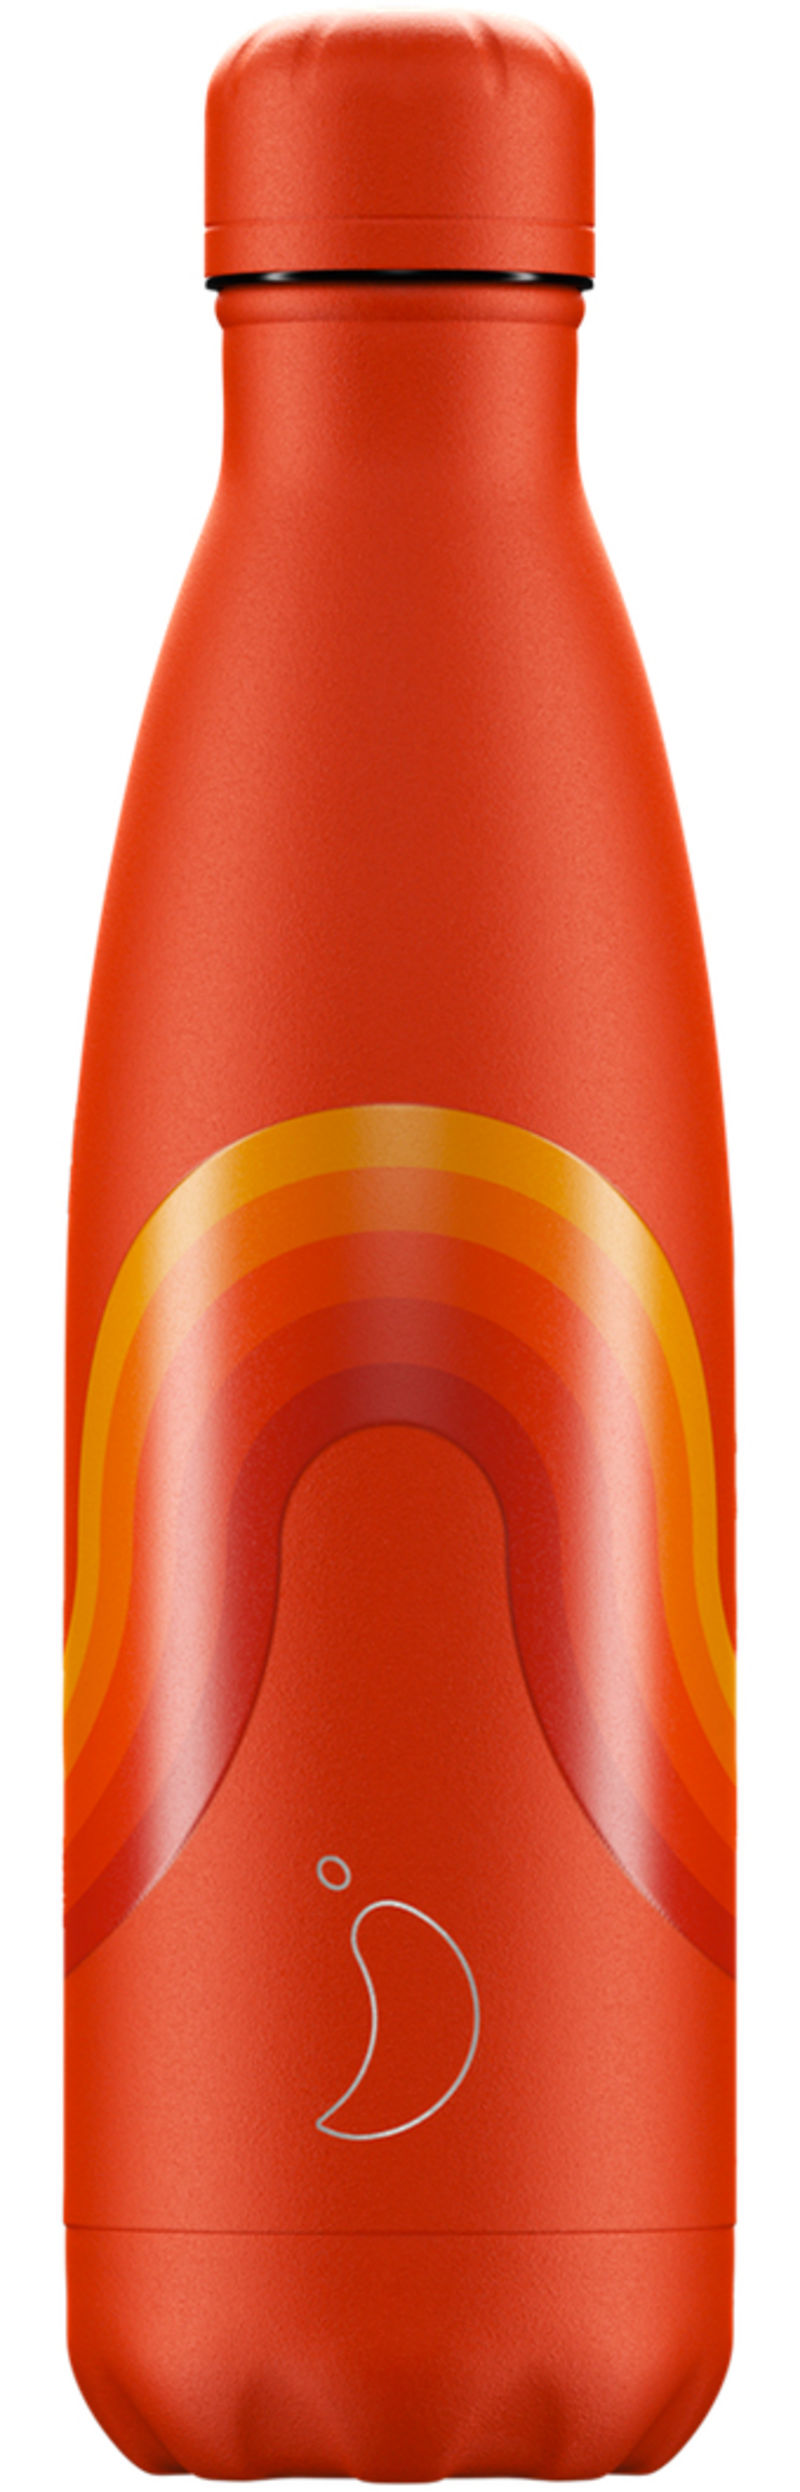 Botella Inox Retro Naranja 500ml -